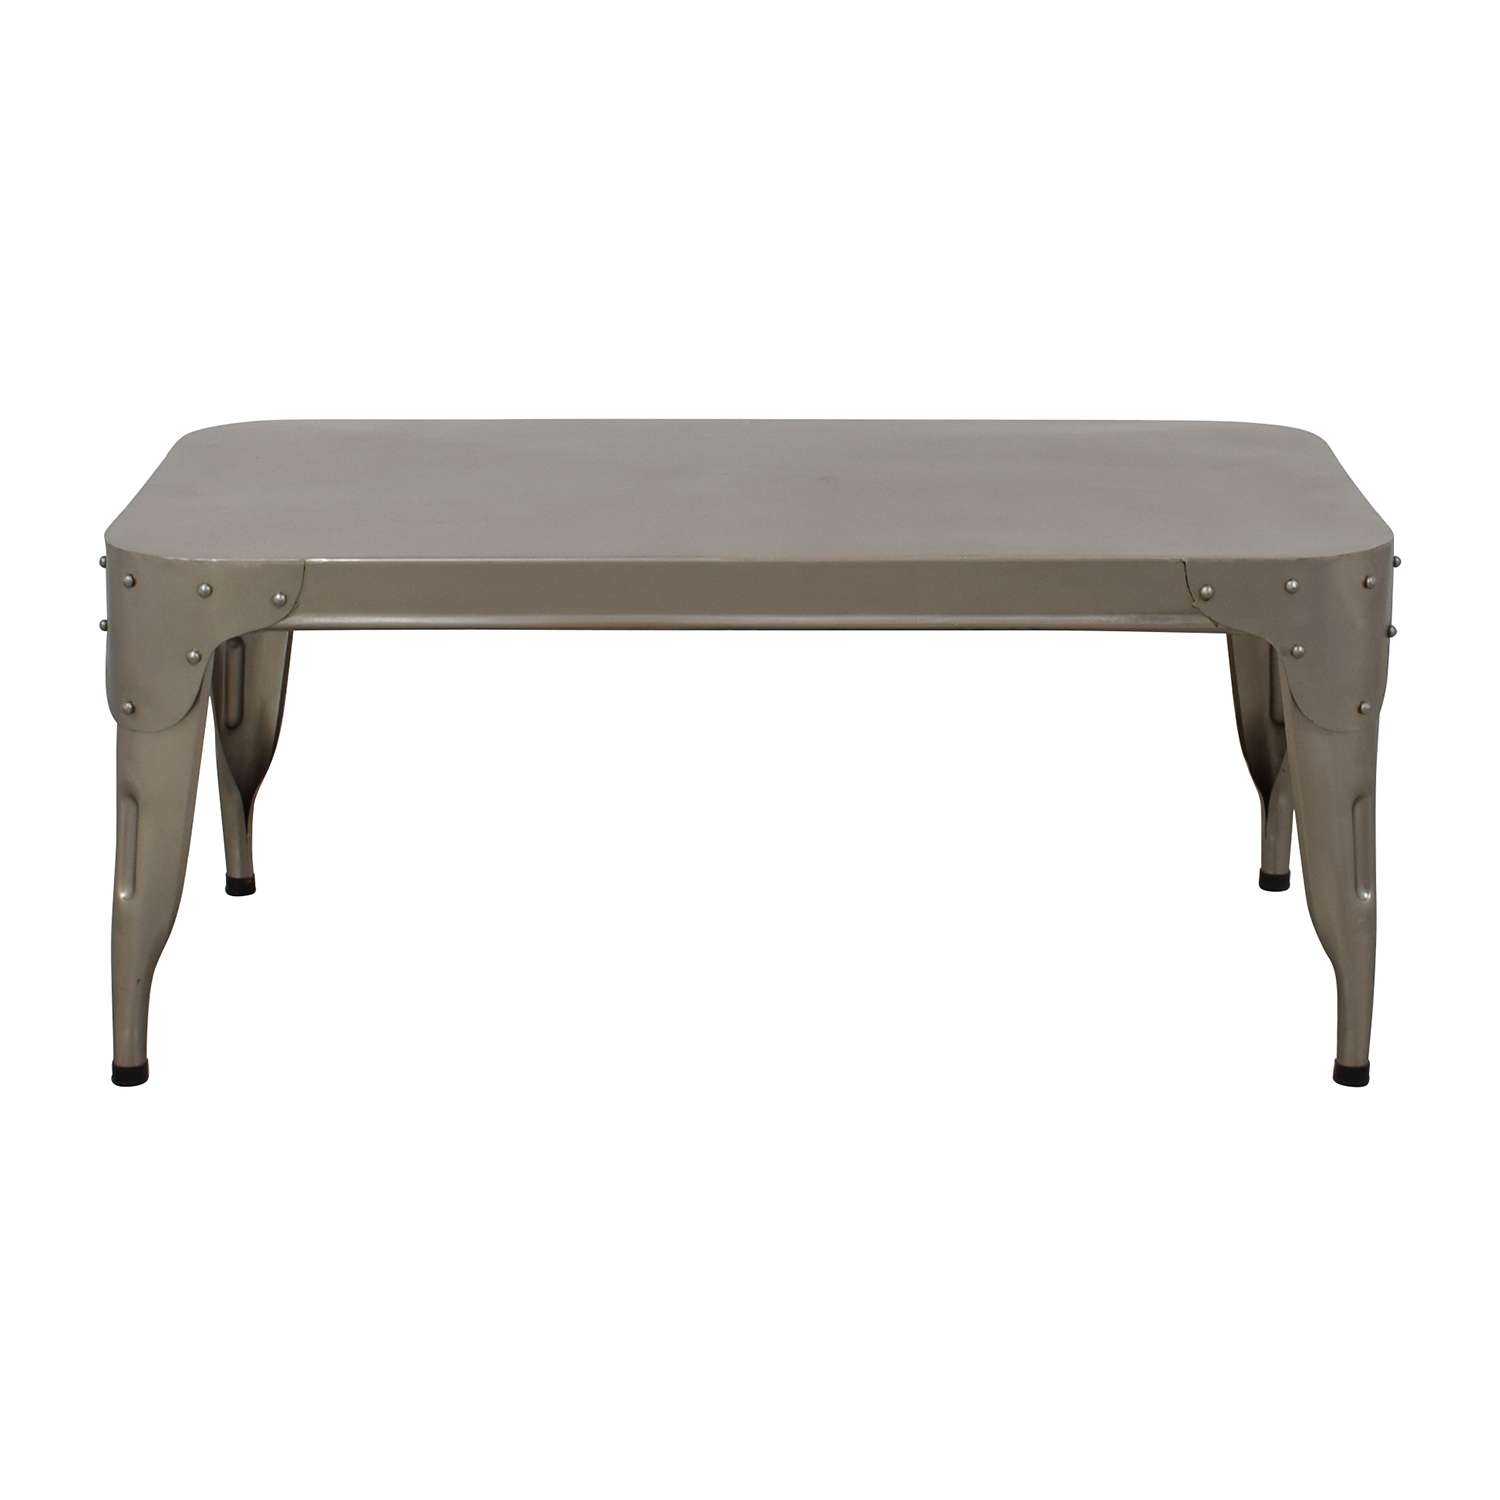 [%most Current Joss And Main Coffee Tables Intended For 90% Off – Joss & Main Joss & Main Holyoke Bunching Coffee Table|90% Off – Joss & Main Joss & Main Holyoke Bunching Coffee Table In Well Known Joss And Main Coffee Tables%] (View 19 of 20)